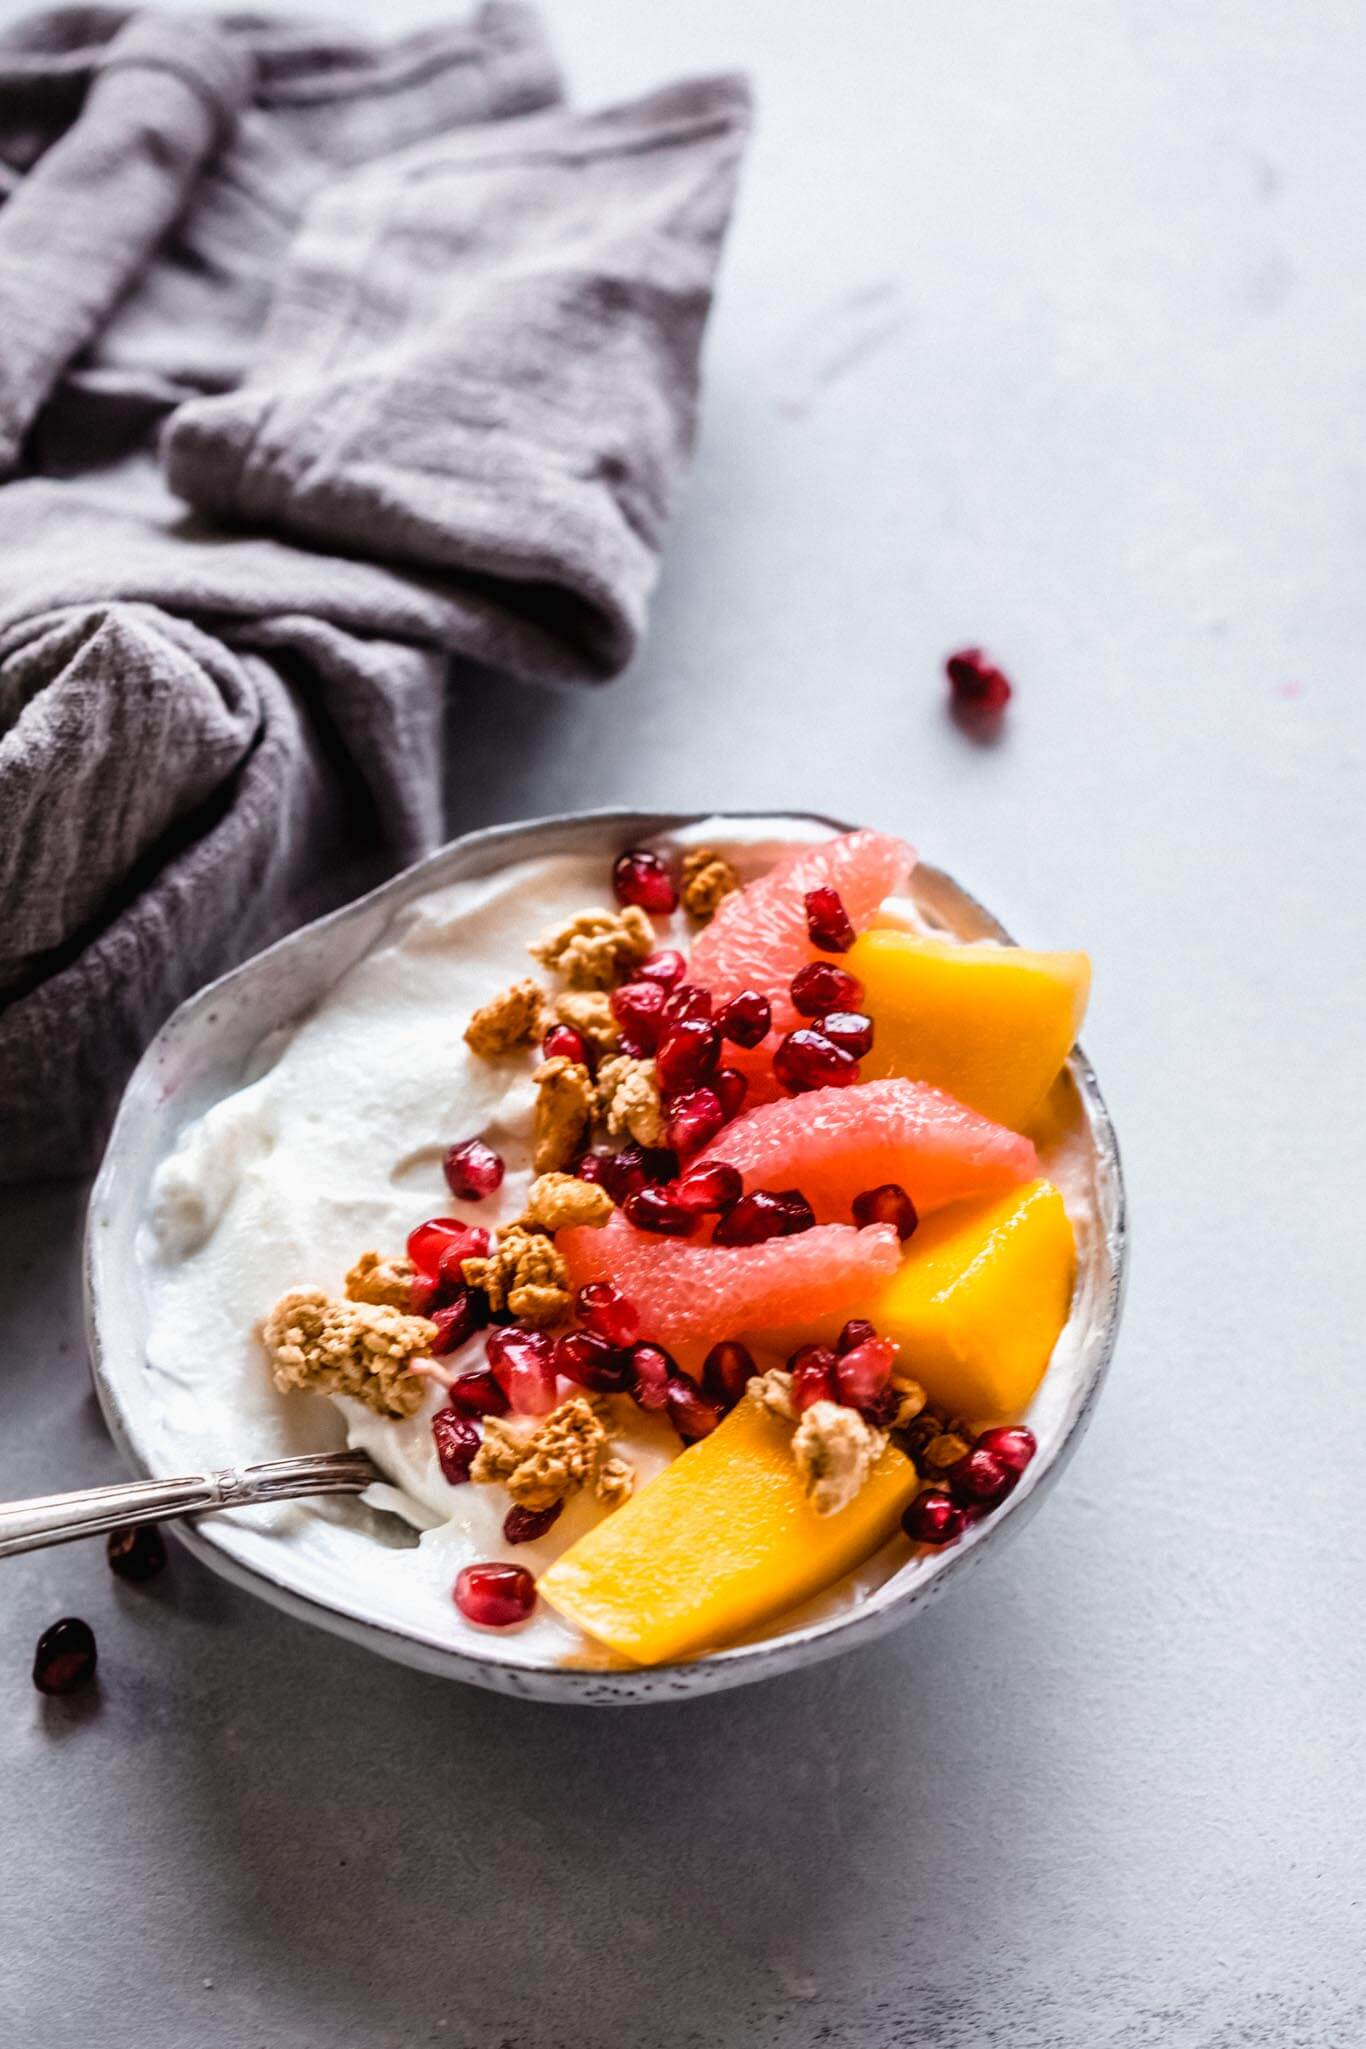 Yogurt topped with mango, grapefruit, granola & pomegranate.